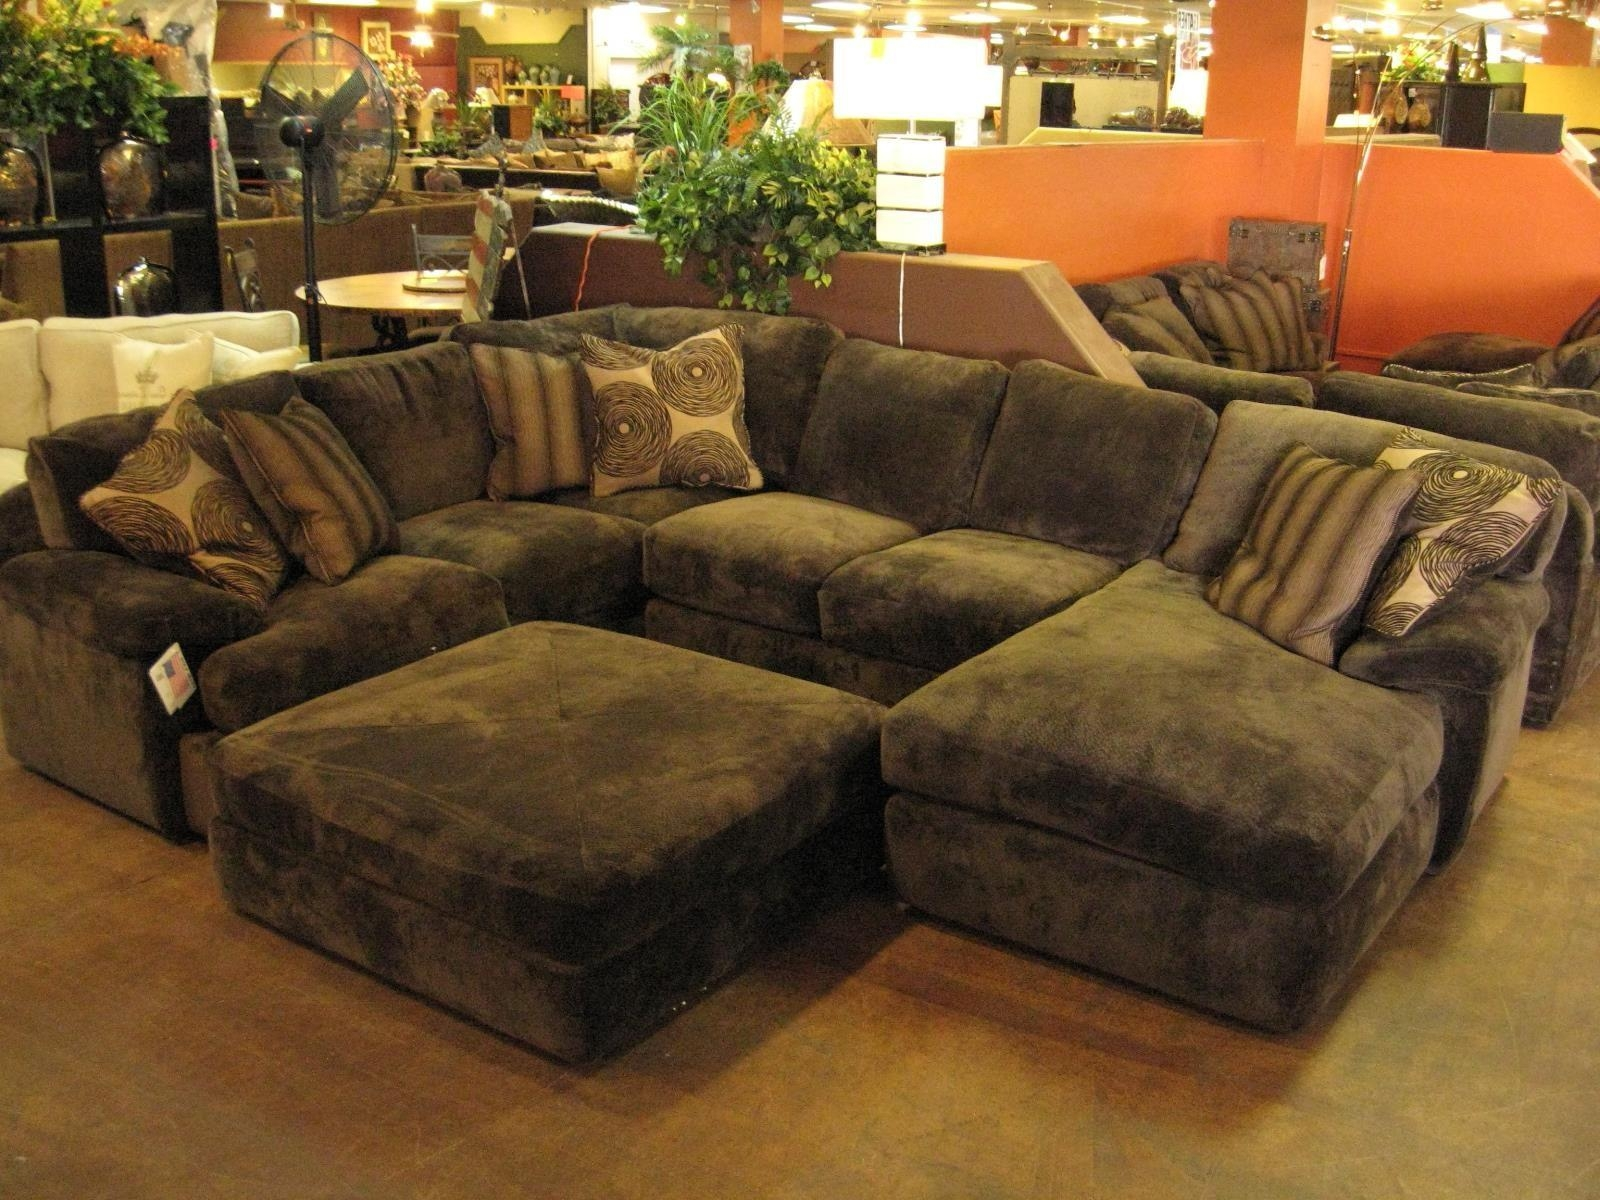 Sofas Center : Sectional Sofa With Oversized Ottoman Home Design Within Sectional With Oversized Ottoman (View 3 of 20)